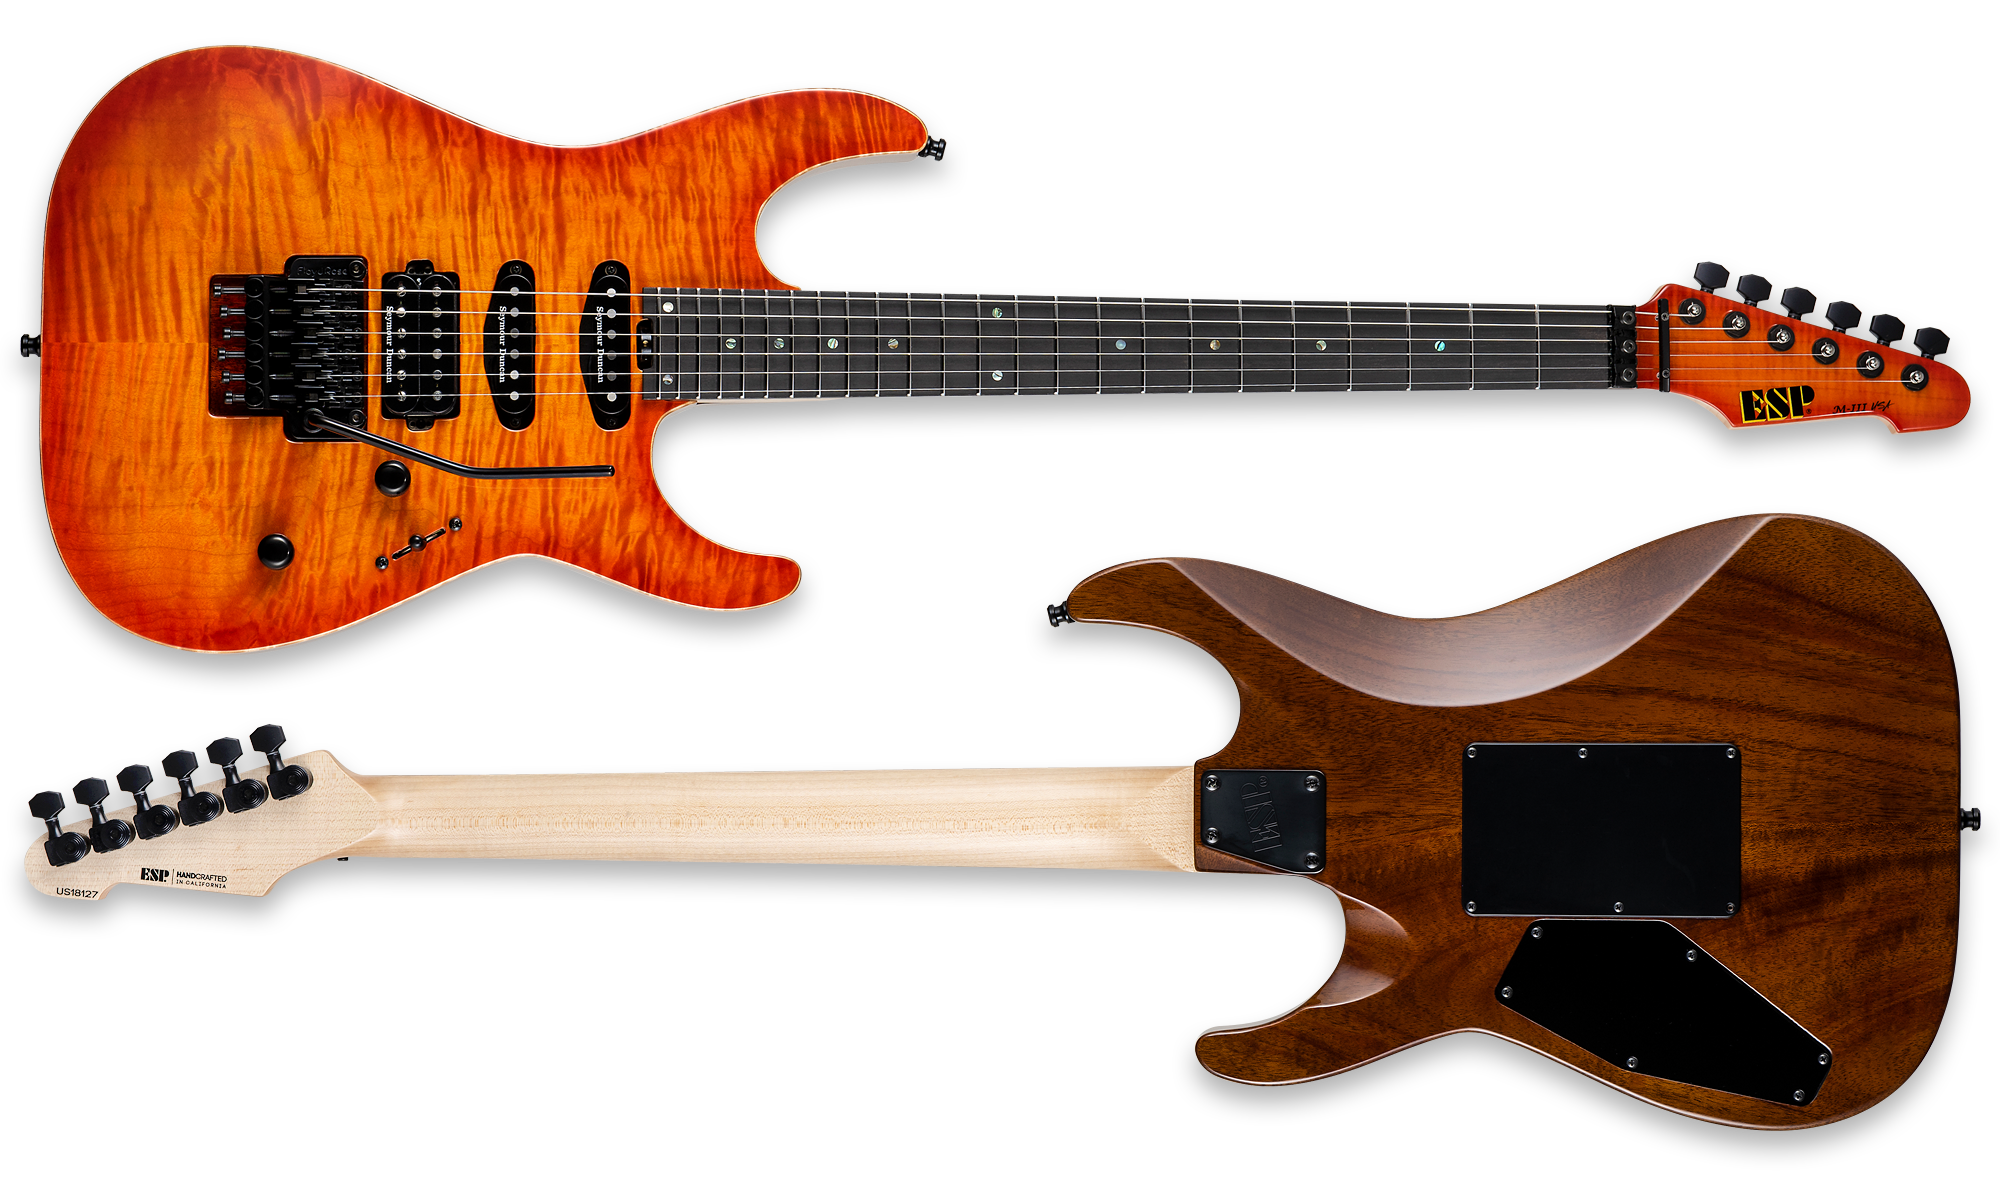 USA M-III FR - The ESP Guitar Company